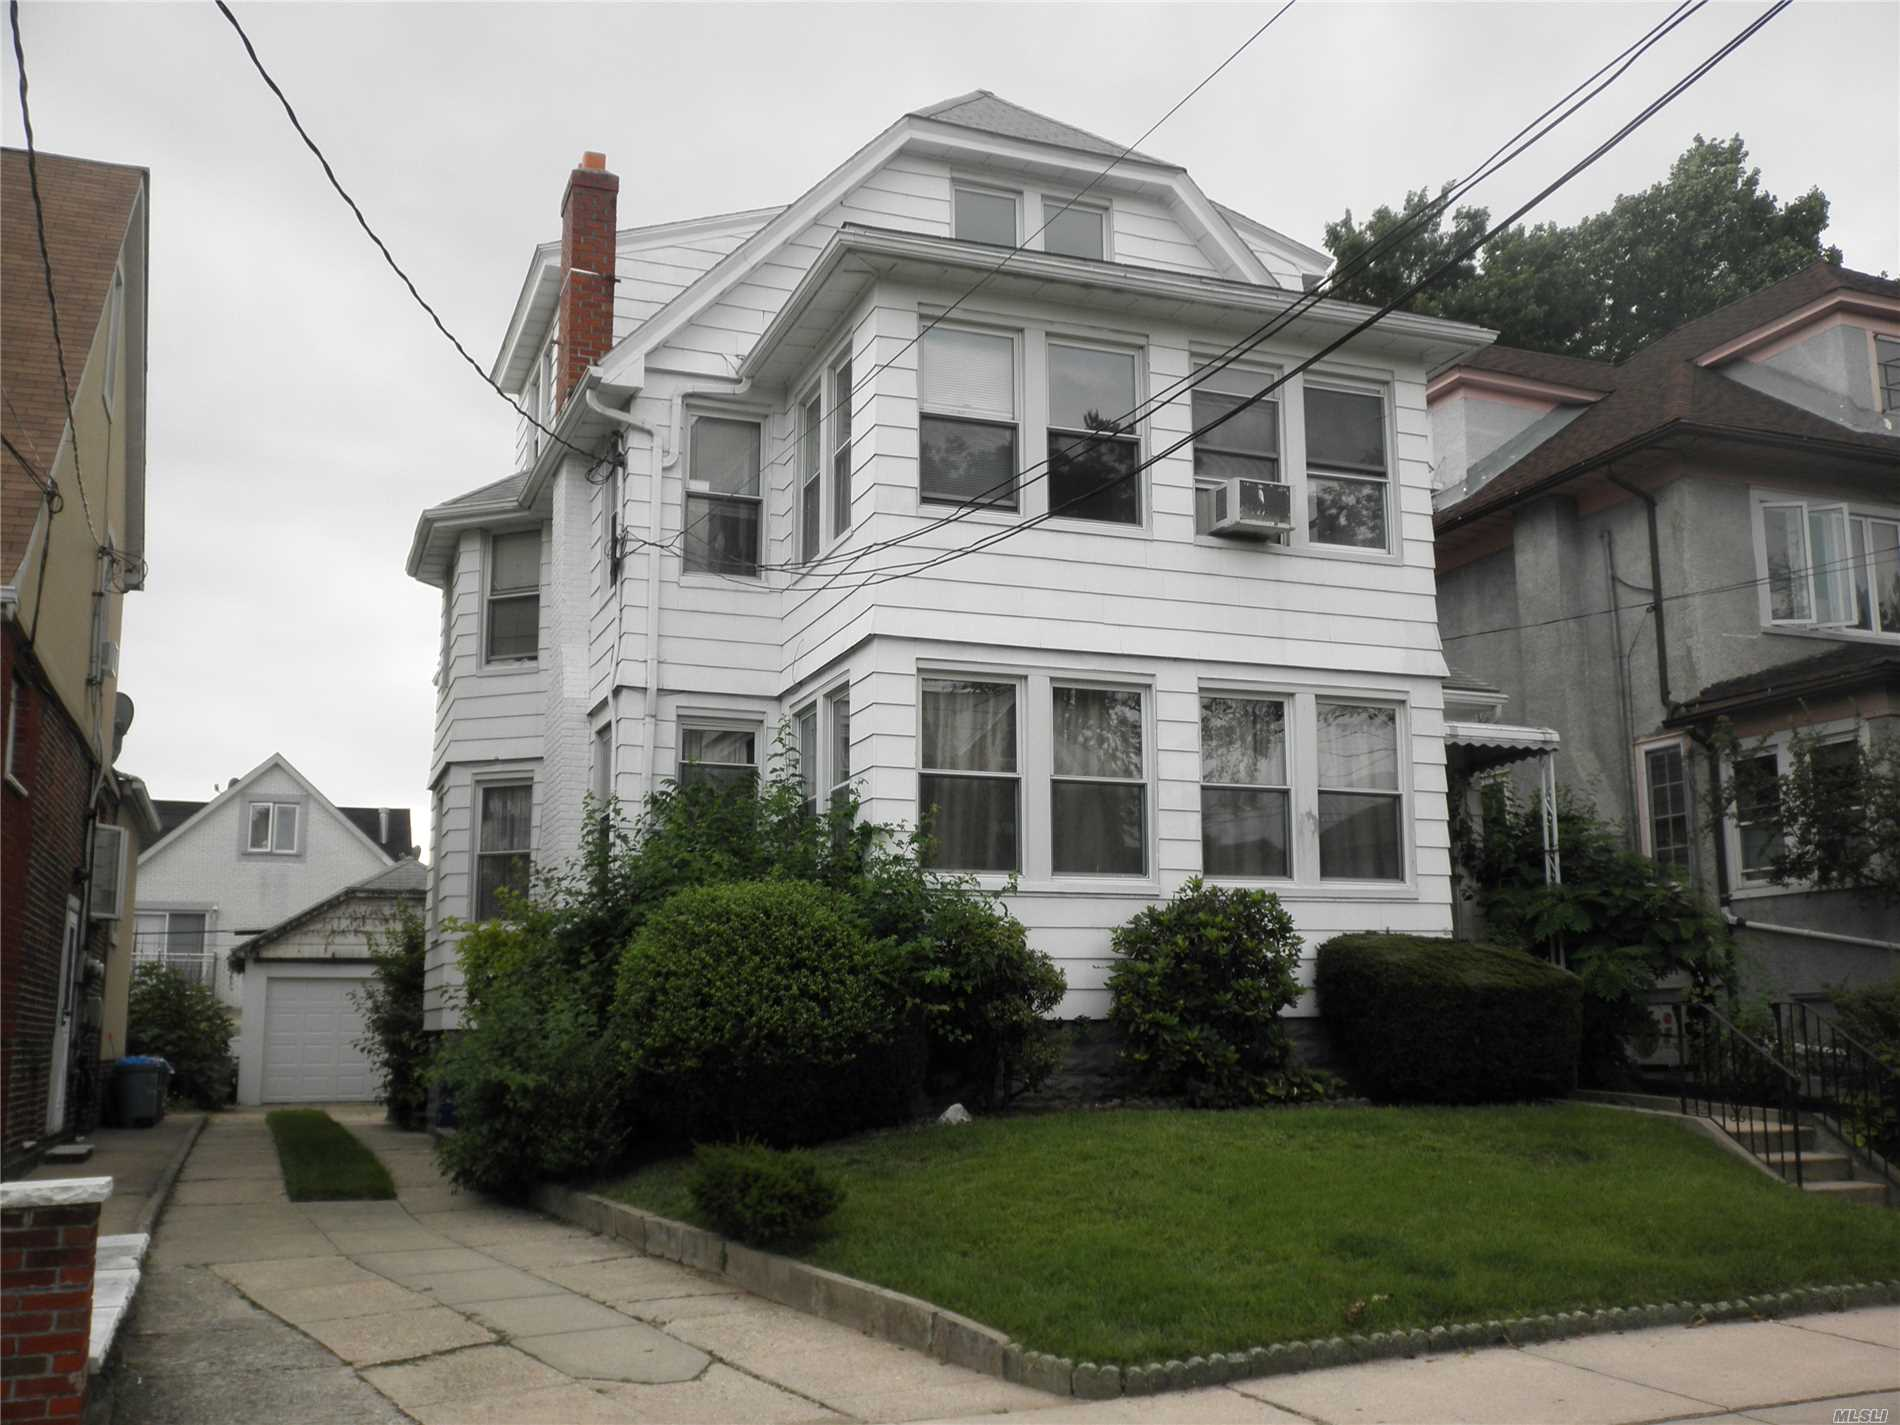 Rare Detached 3 Family In Prime Flushing. Minutes Walk To Bus On Sanford Ave, Lirr. Great Potential!